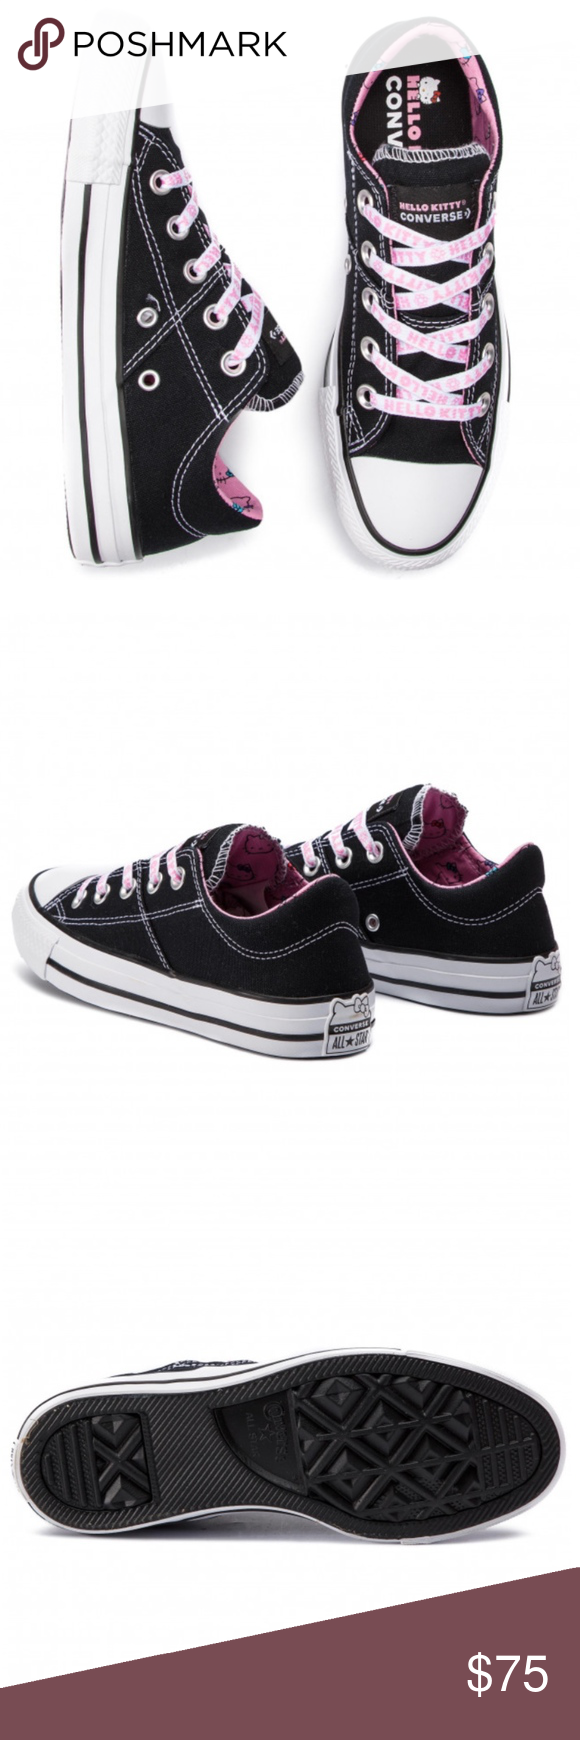 8ad175b7d7f0 New Converse CTAS Madison OX Hello Kitty Sneakers Brand new in box. Size 7  RARE